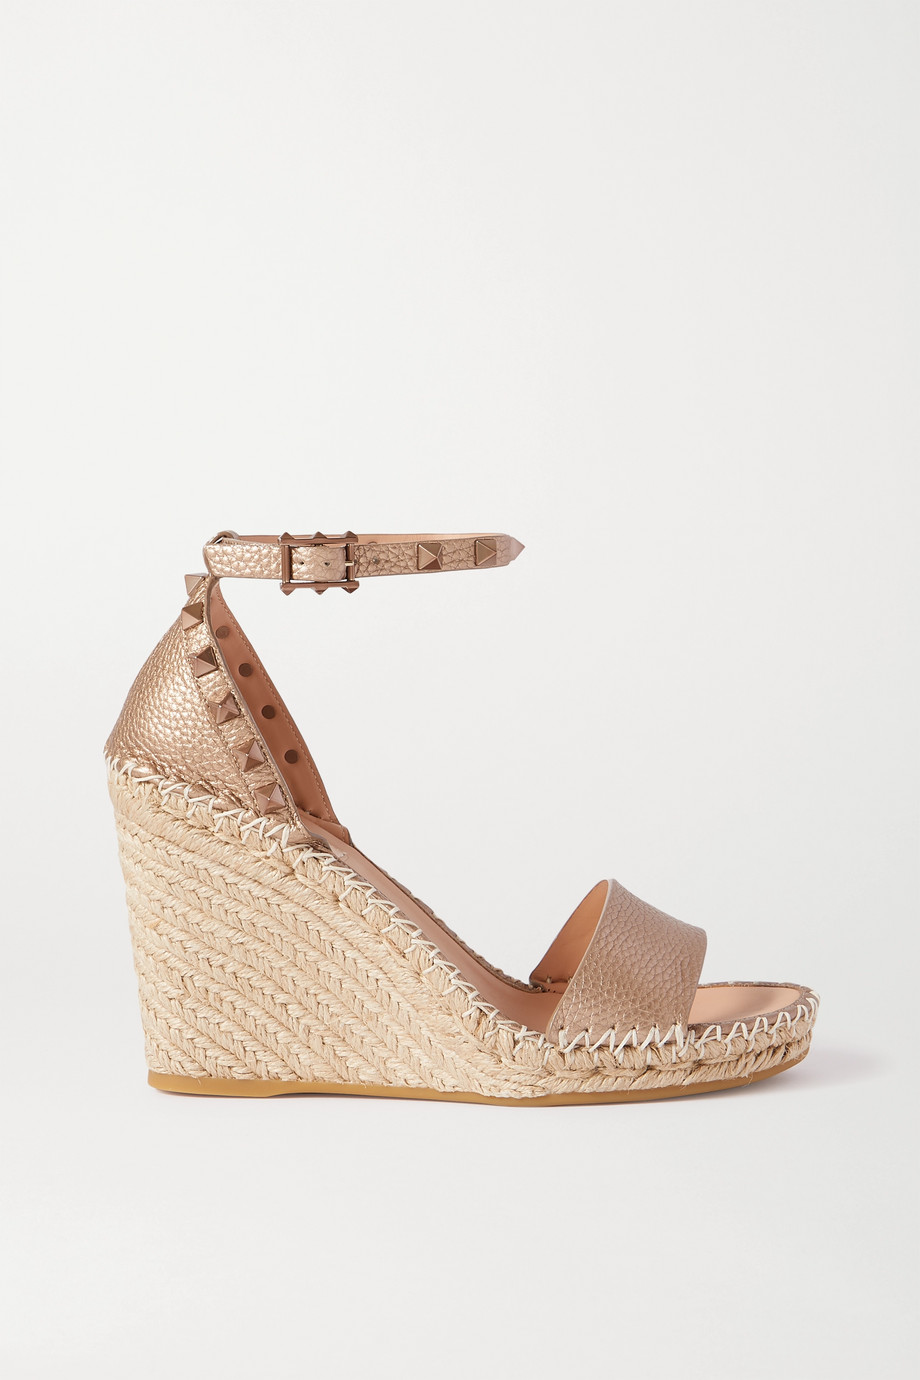 Valentino Valentino Garavani Rockstud 105 metallic textured-leather wedge espadrilles